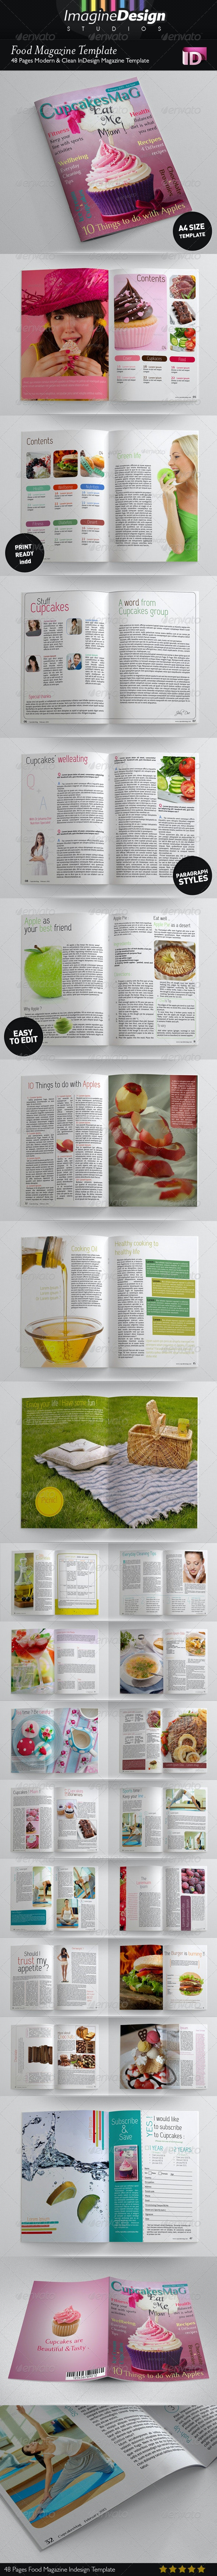 48 Pages Food Magazine Template - Magazines Print Templates